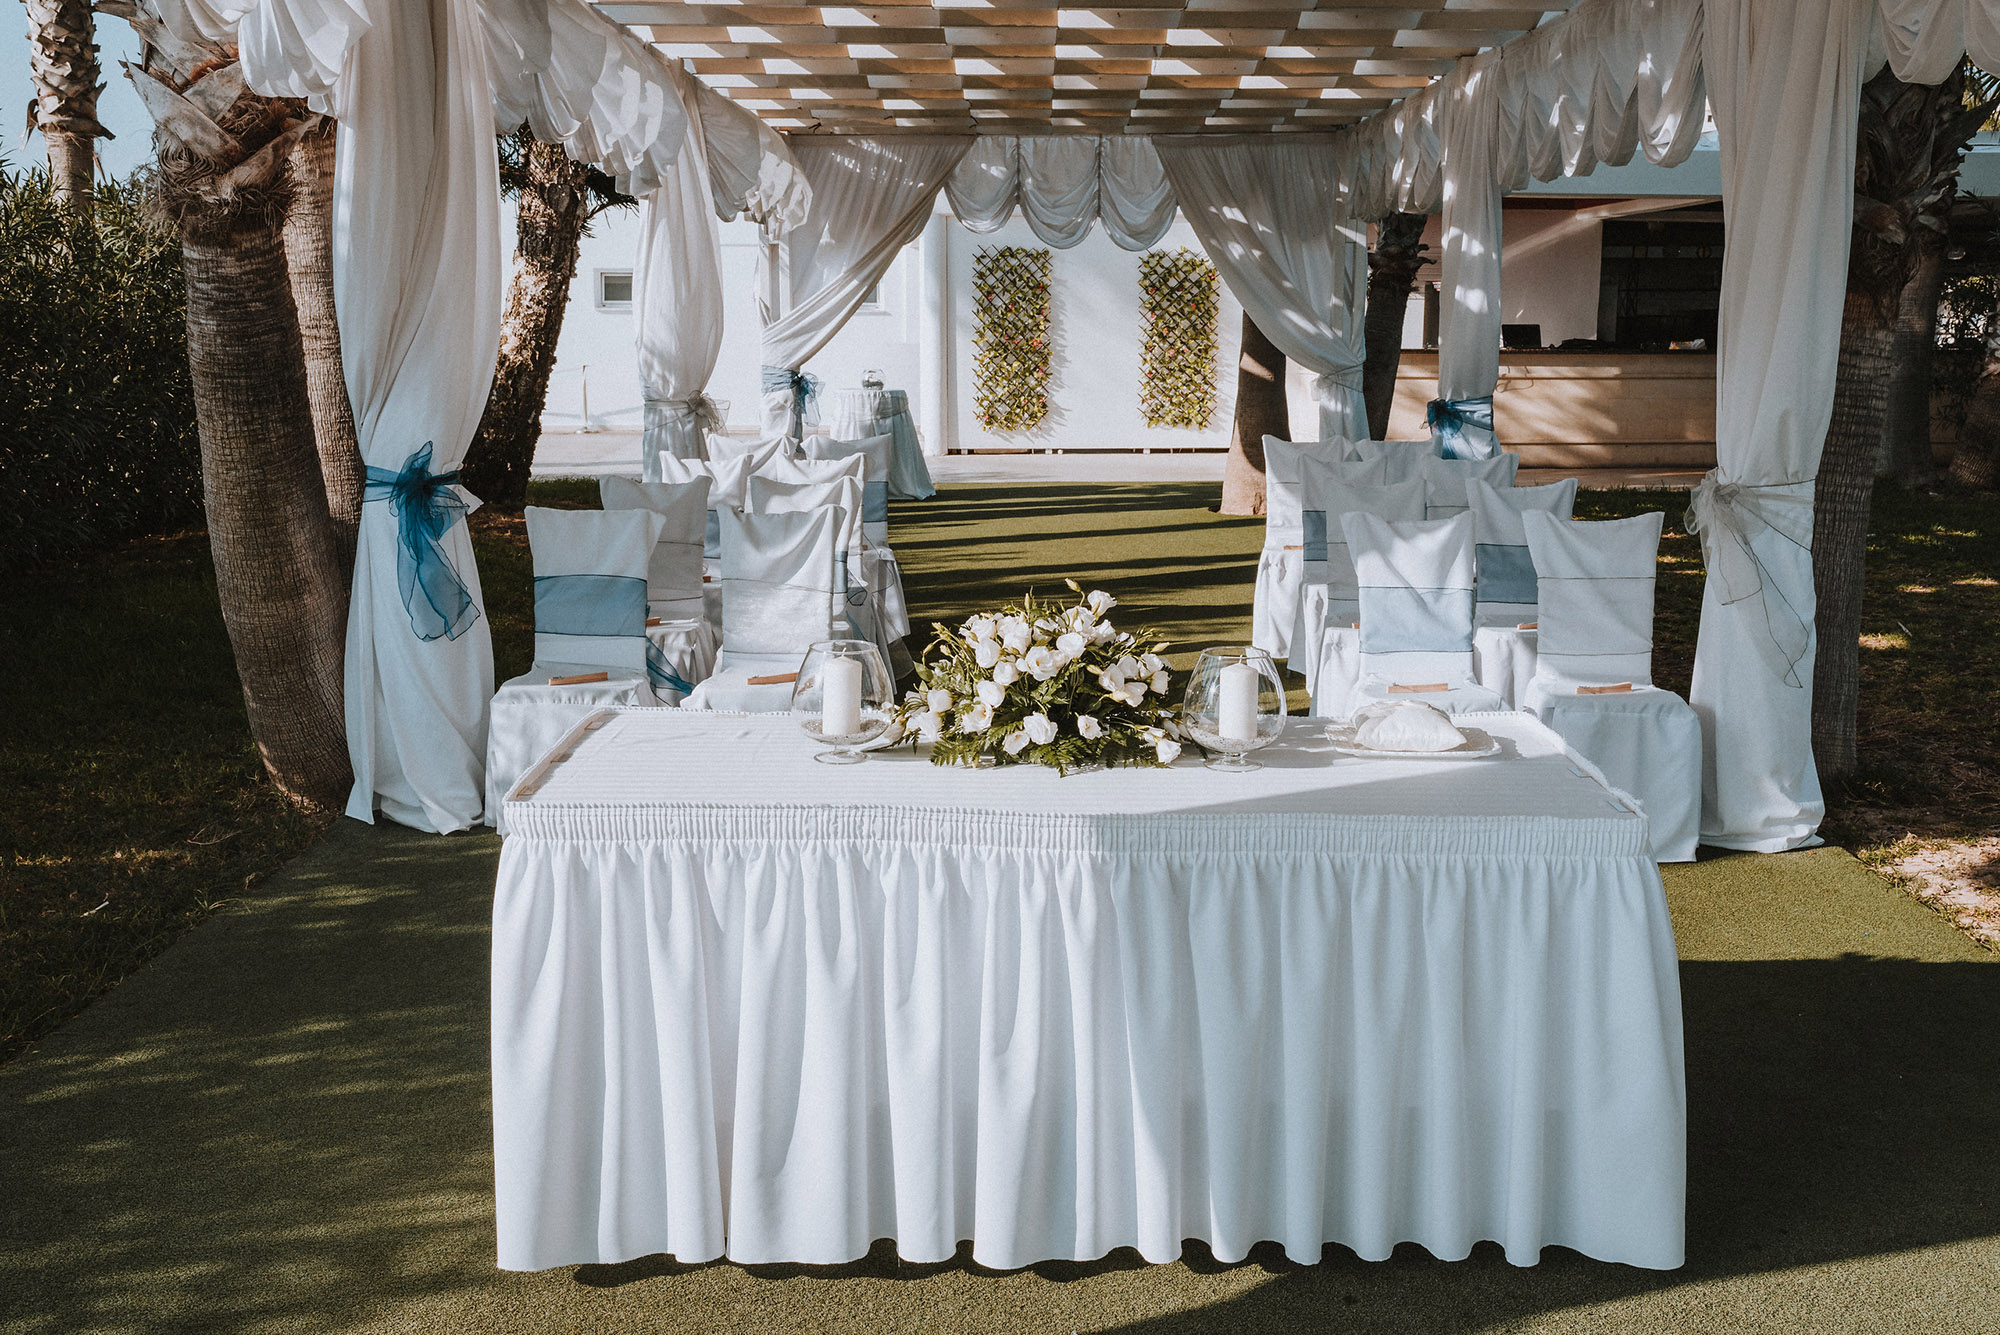 Book your wedding day in Louis Phaethon Beach Hotel Paphos